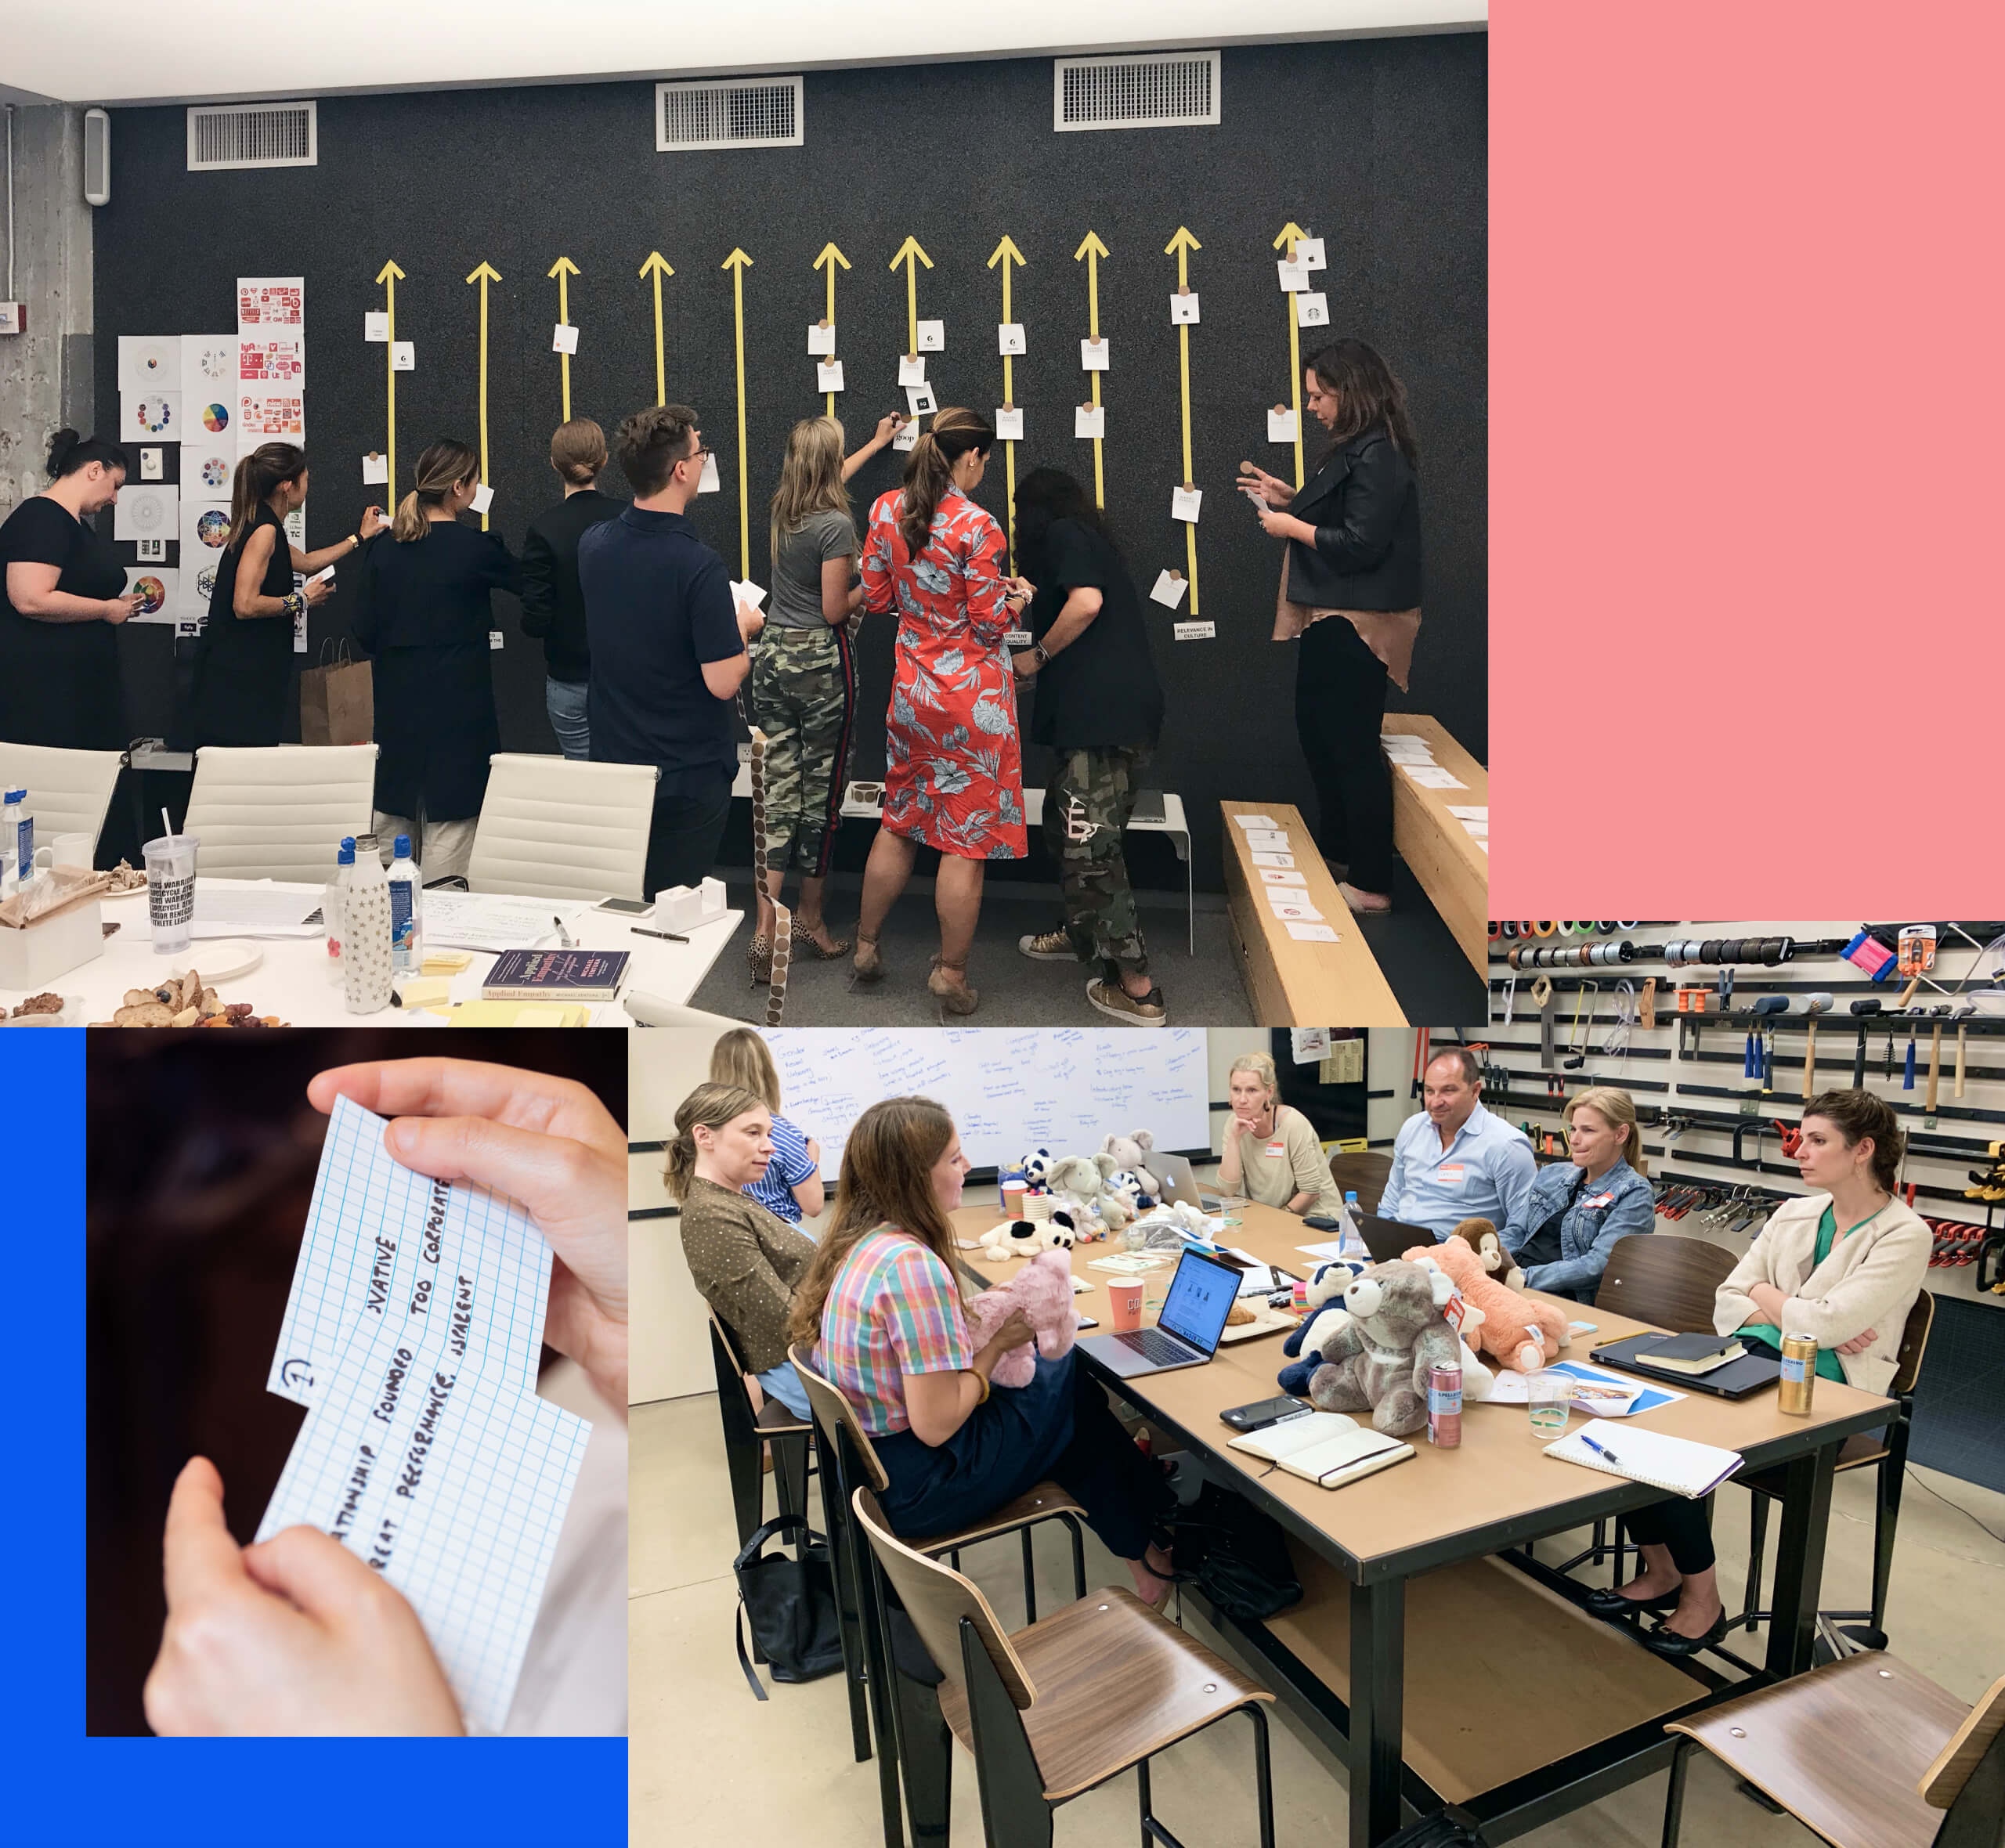 Several photos of collaborative workshops